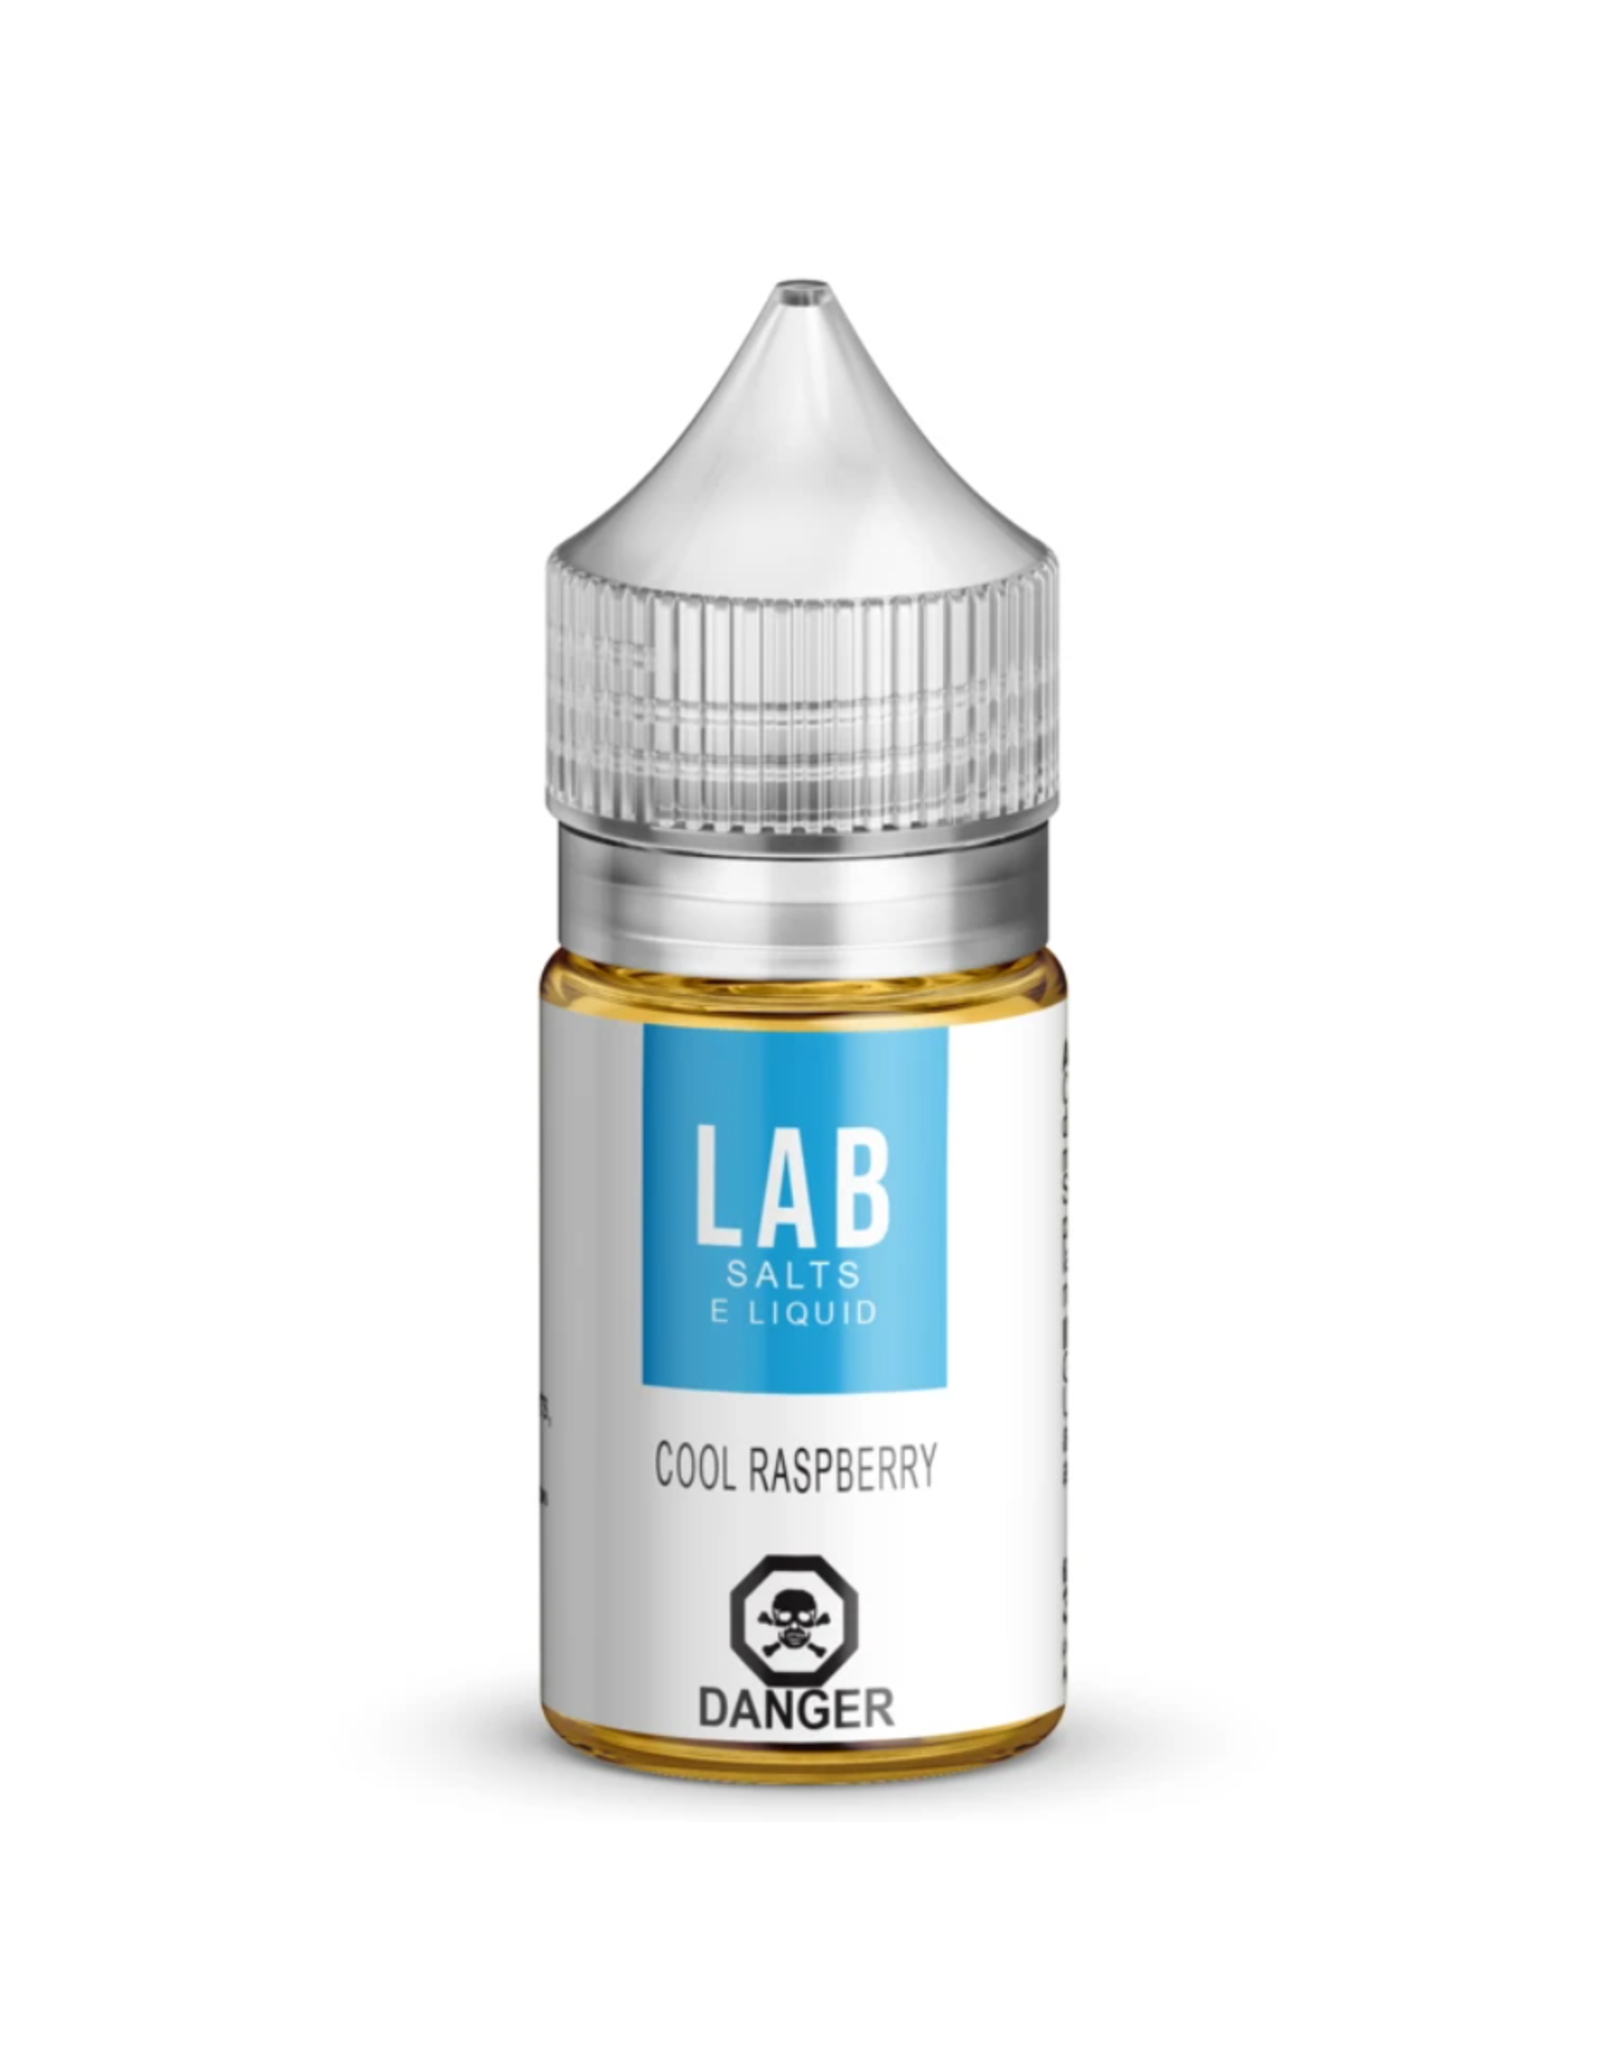 VLabs Liquids Lab Salts 30mL